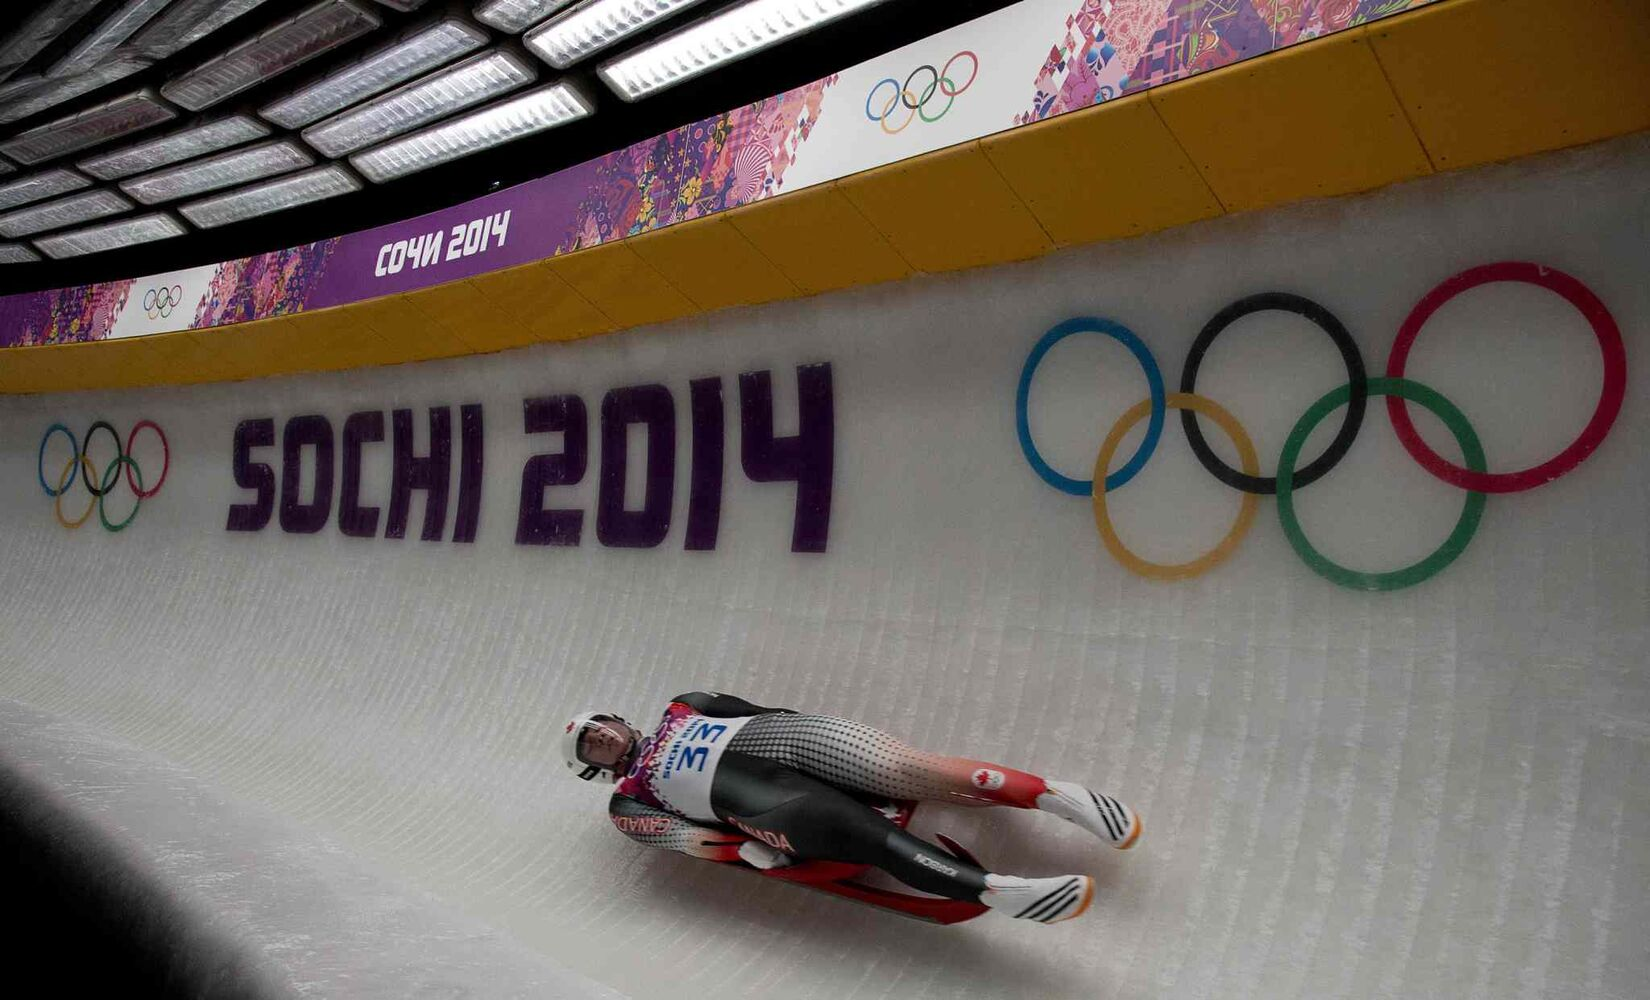 Canada's Mitchel Malyk, of Calgary, races in the third run of the men's single luge at the Sochi Winter Olympics. (Jonathan Hayward / The Canadian Press)